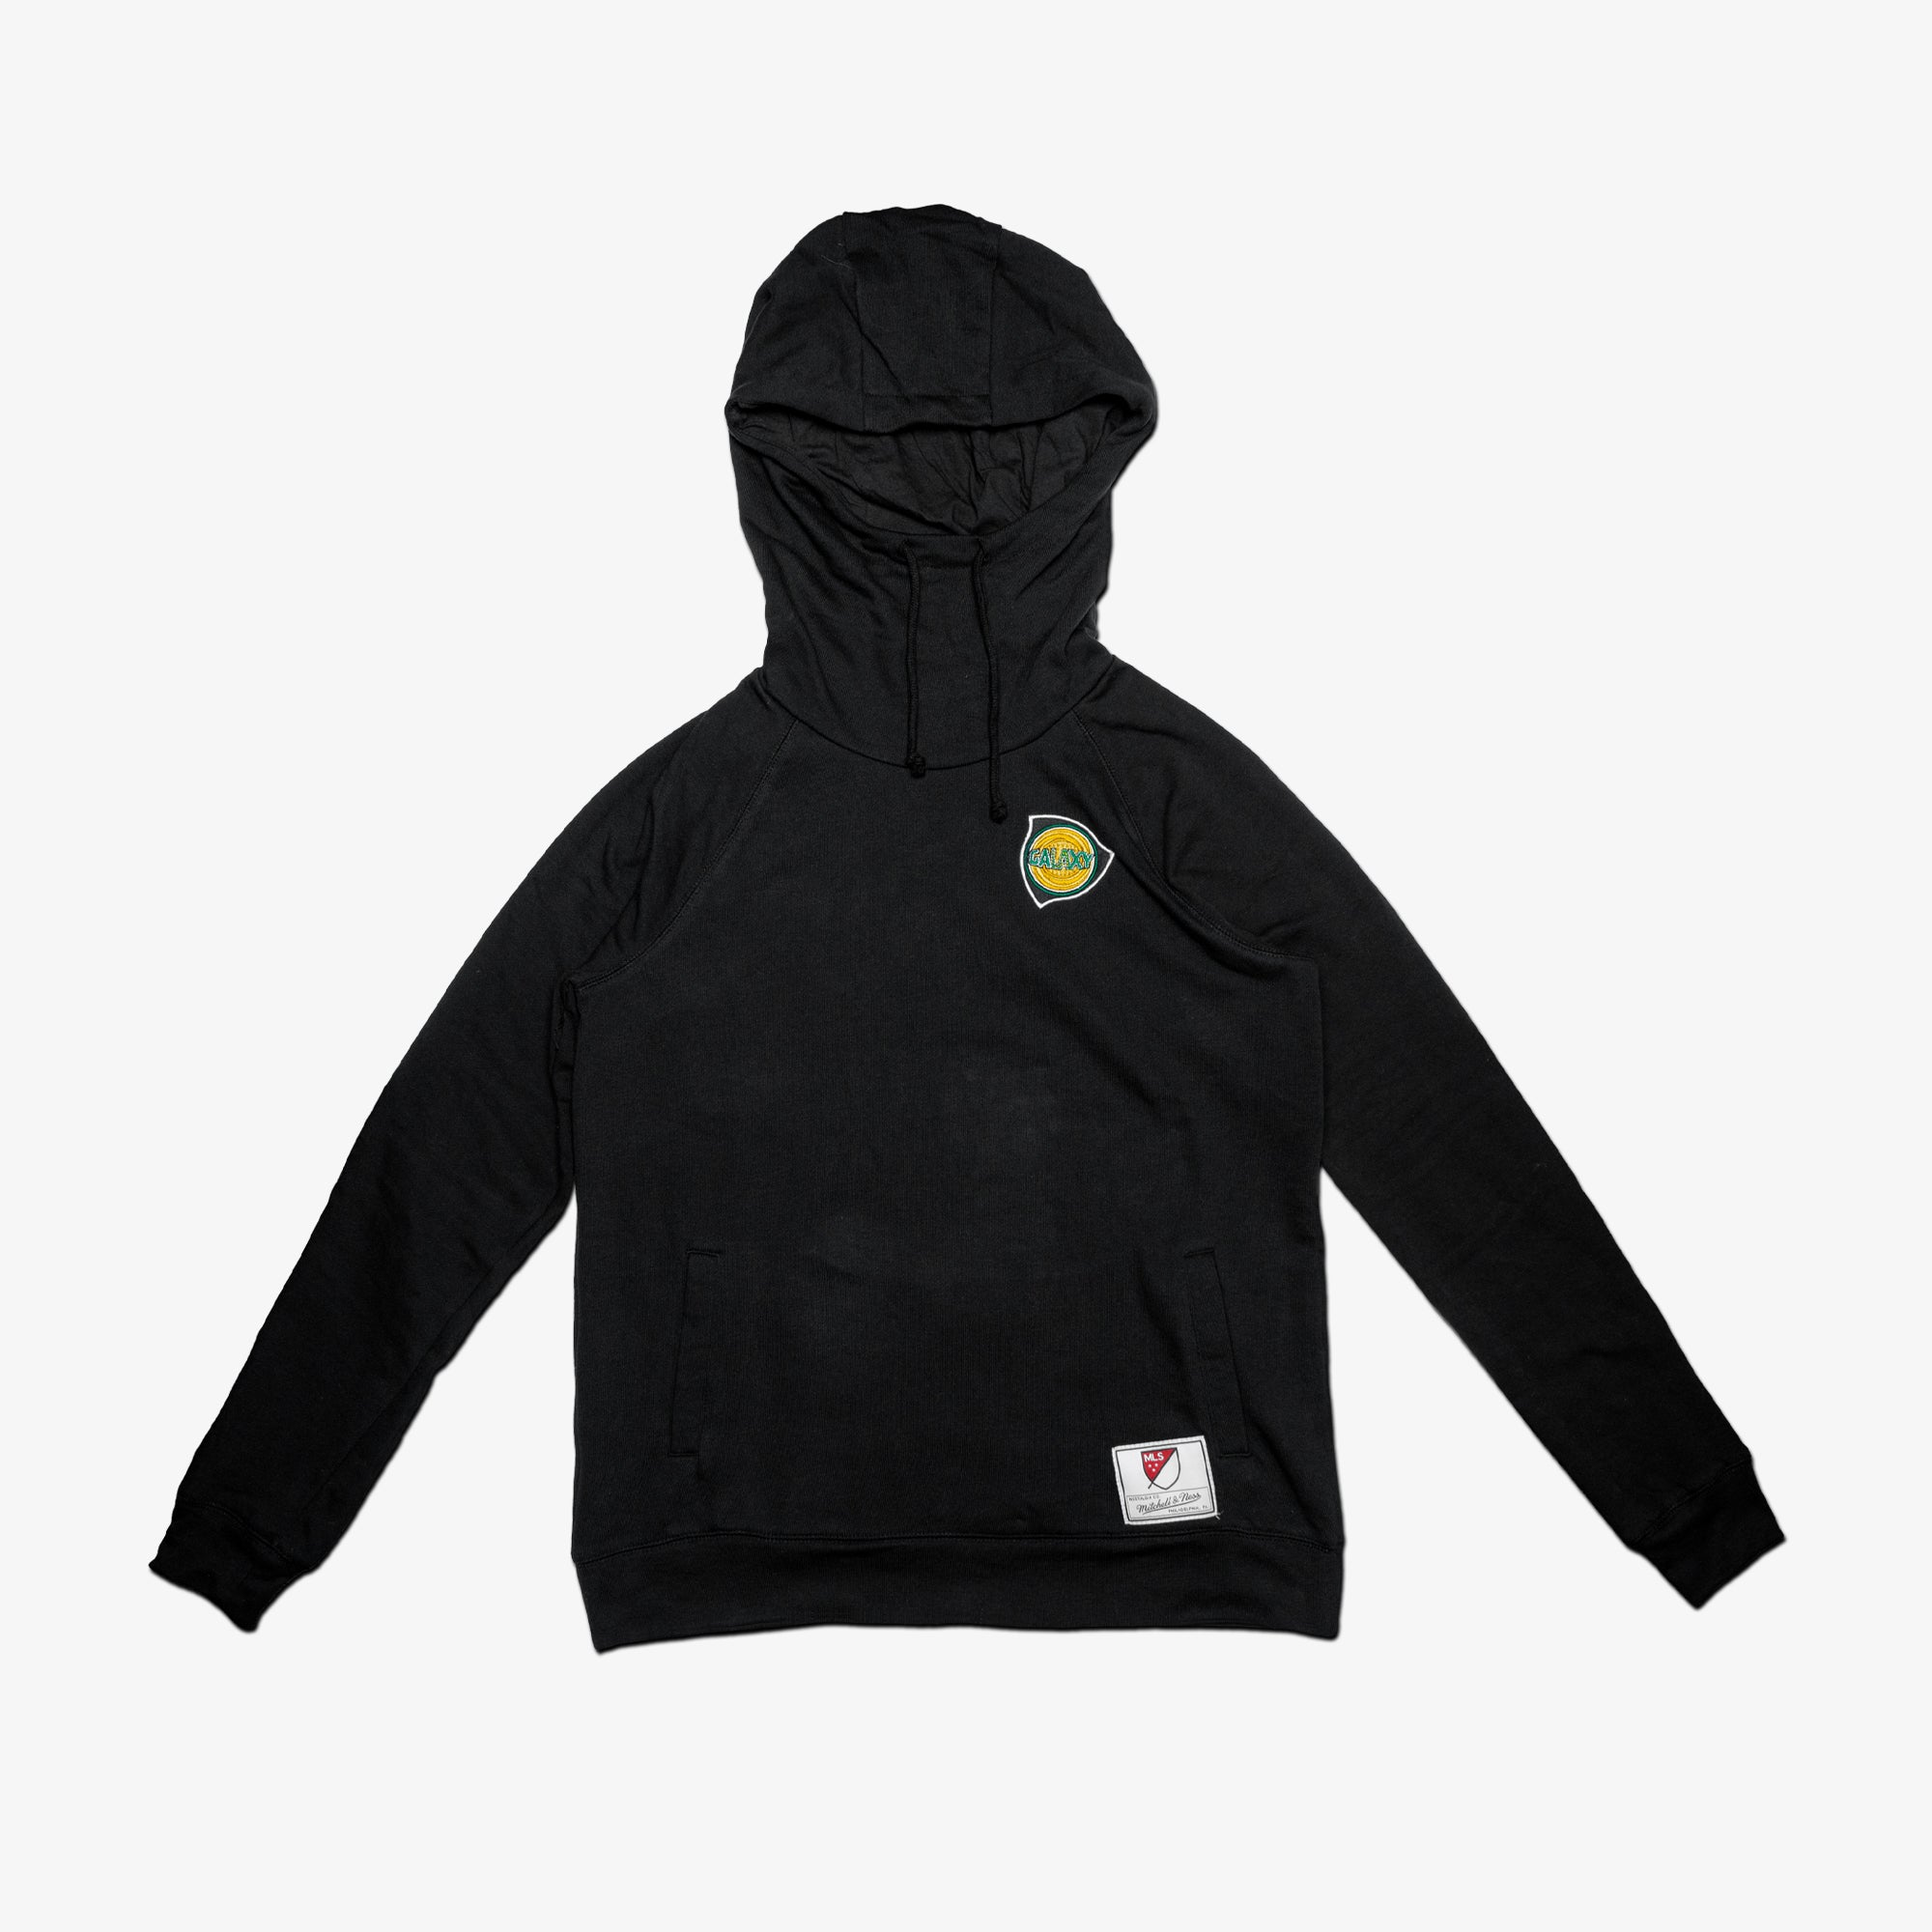 LA GALAXY HOODY 25TH ANNIVERSARY - WOMEN'S